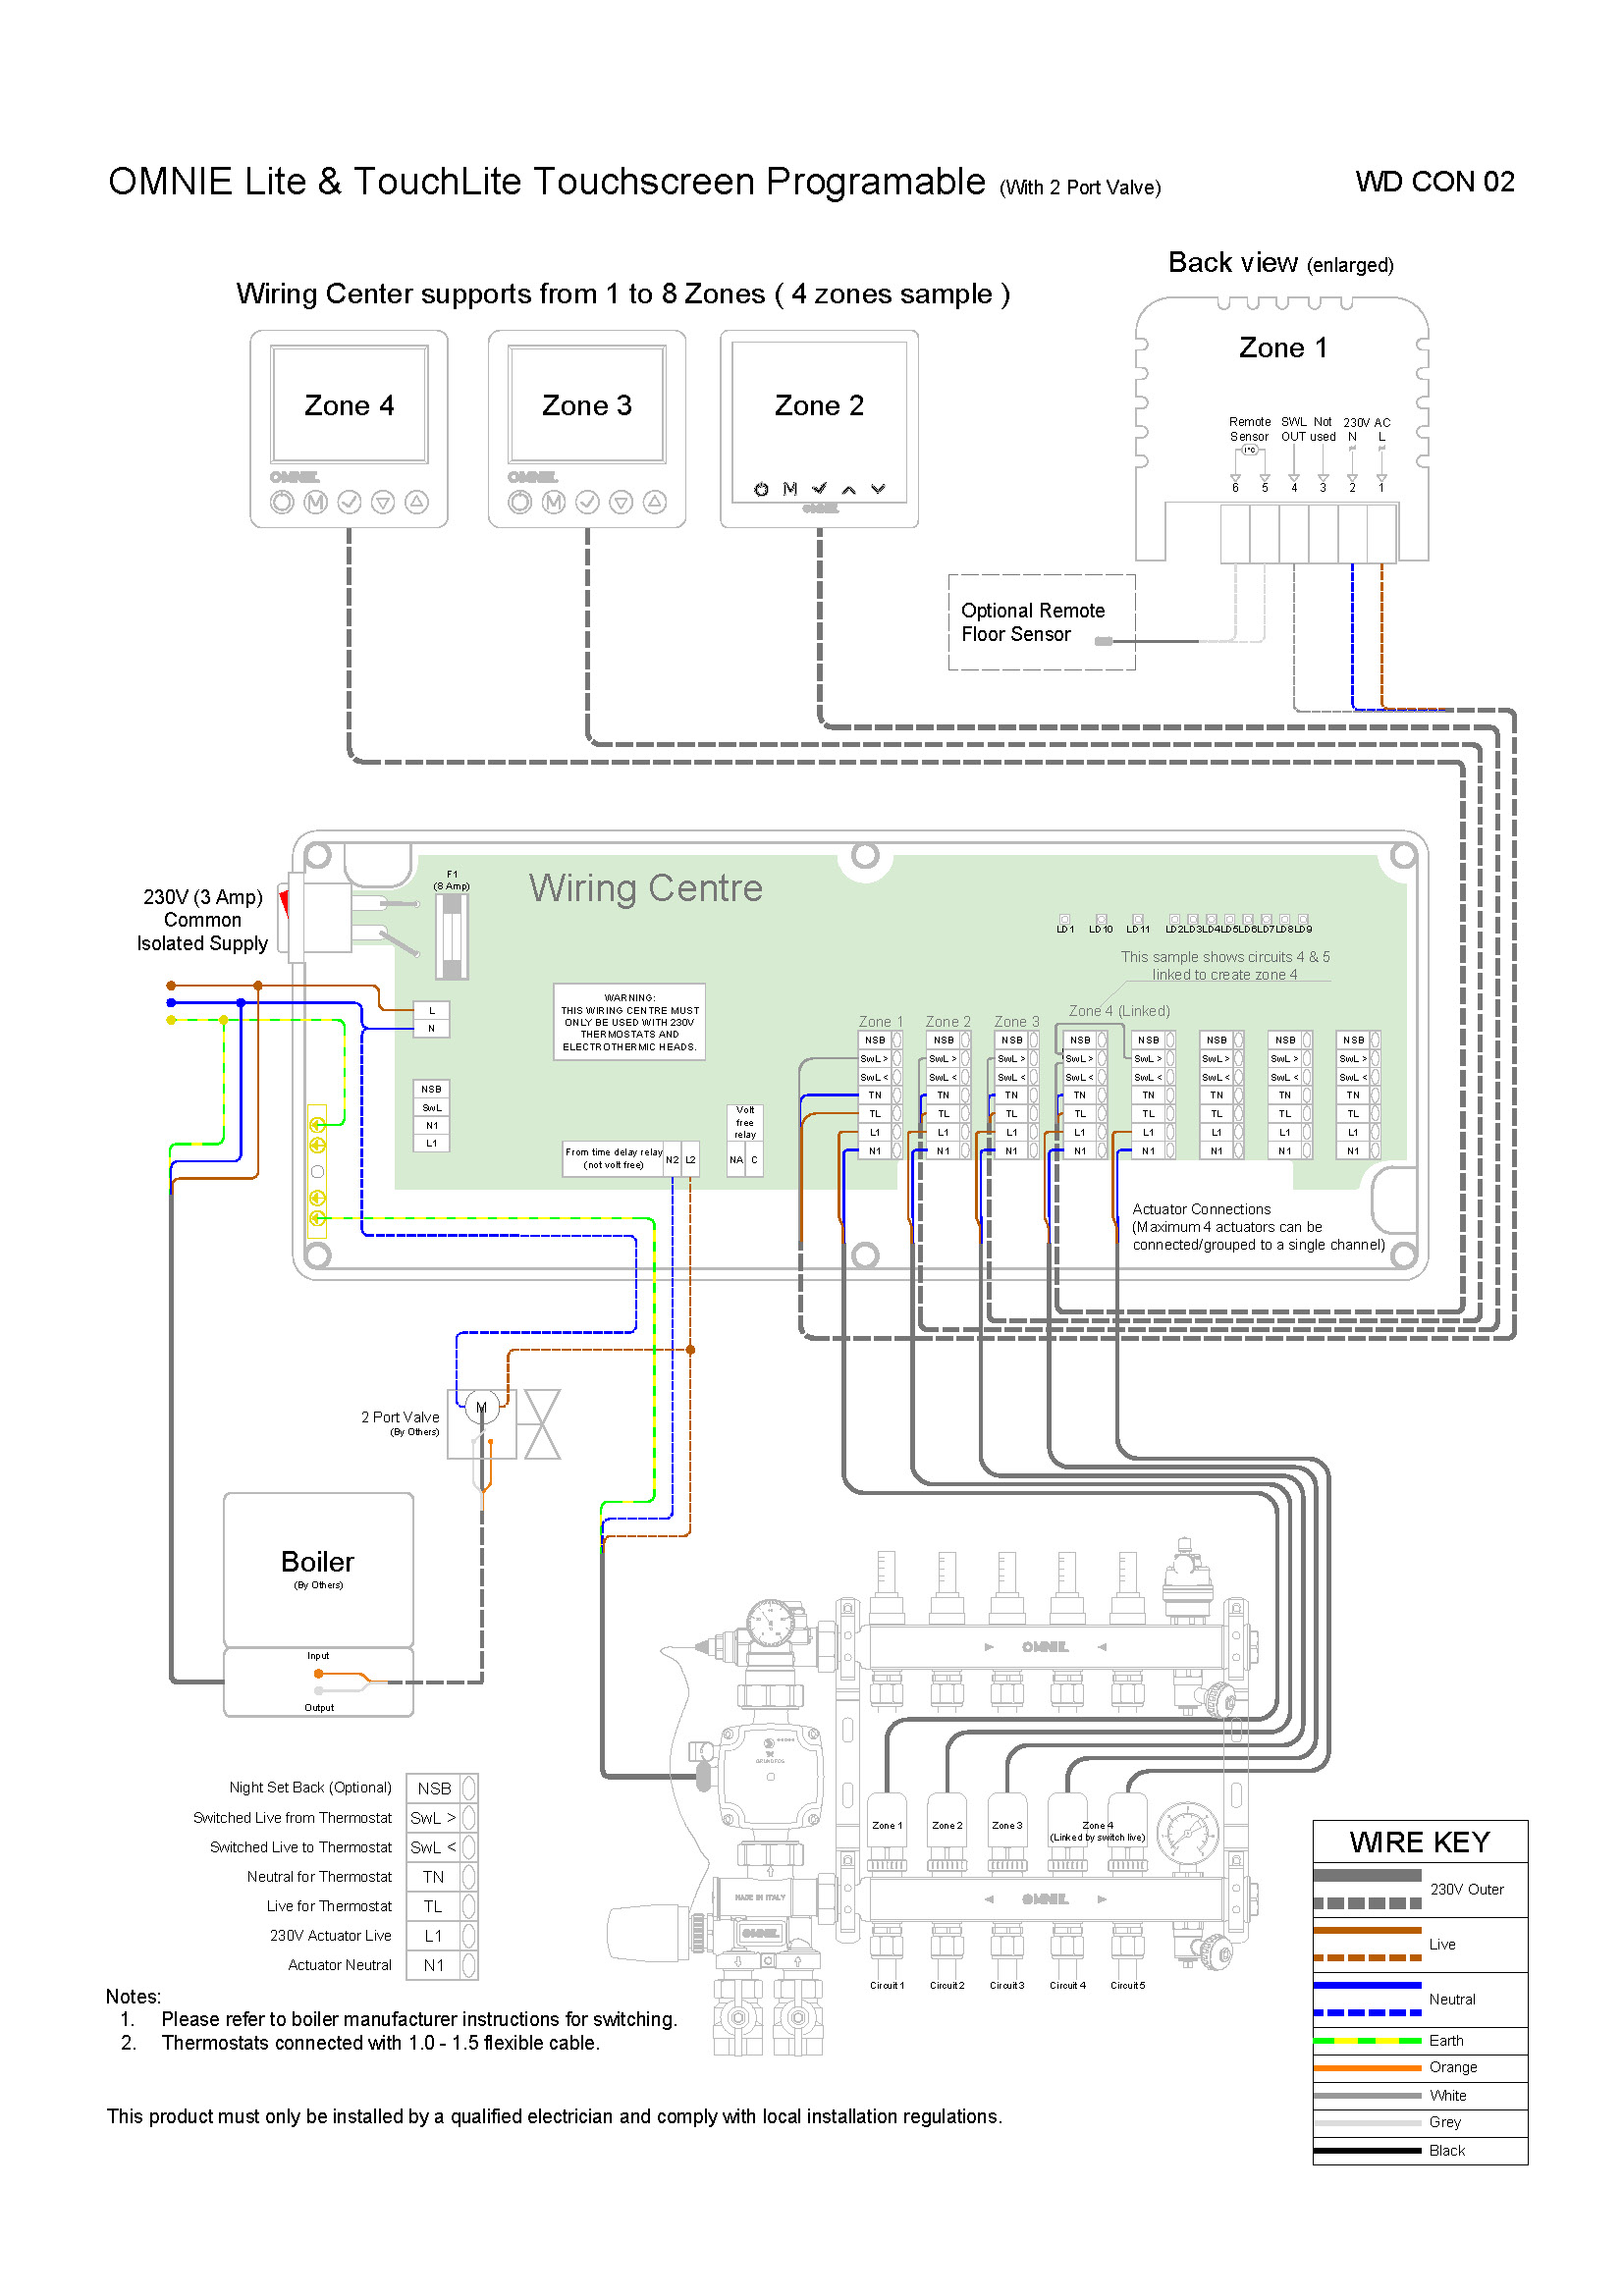 Omnie Lite Programmable Thermostat Wiring Diagram Omnie Underfloor Heating Heat Pumps Ventilation